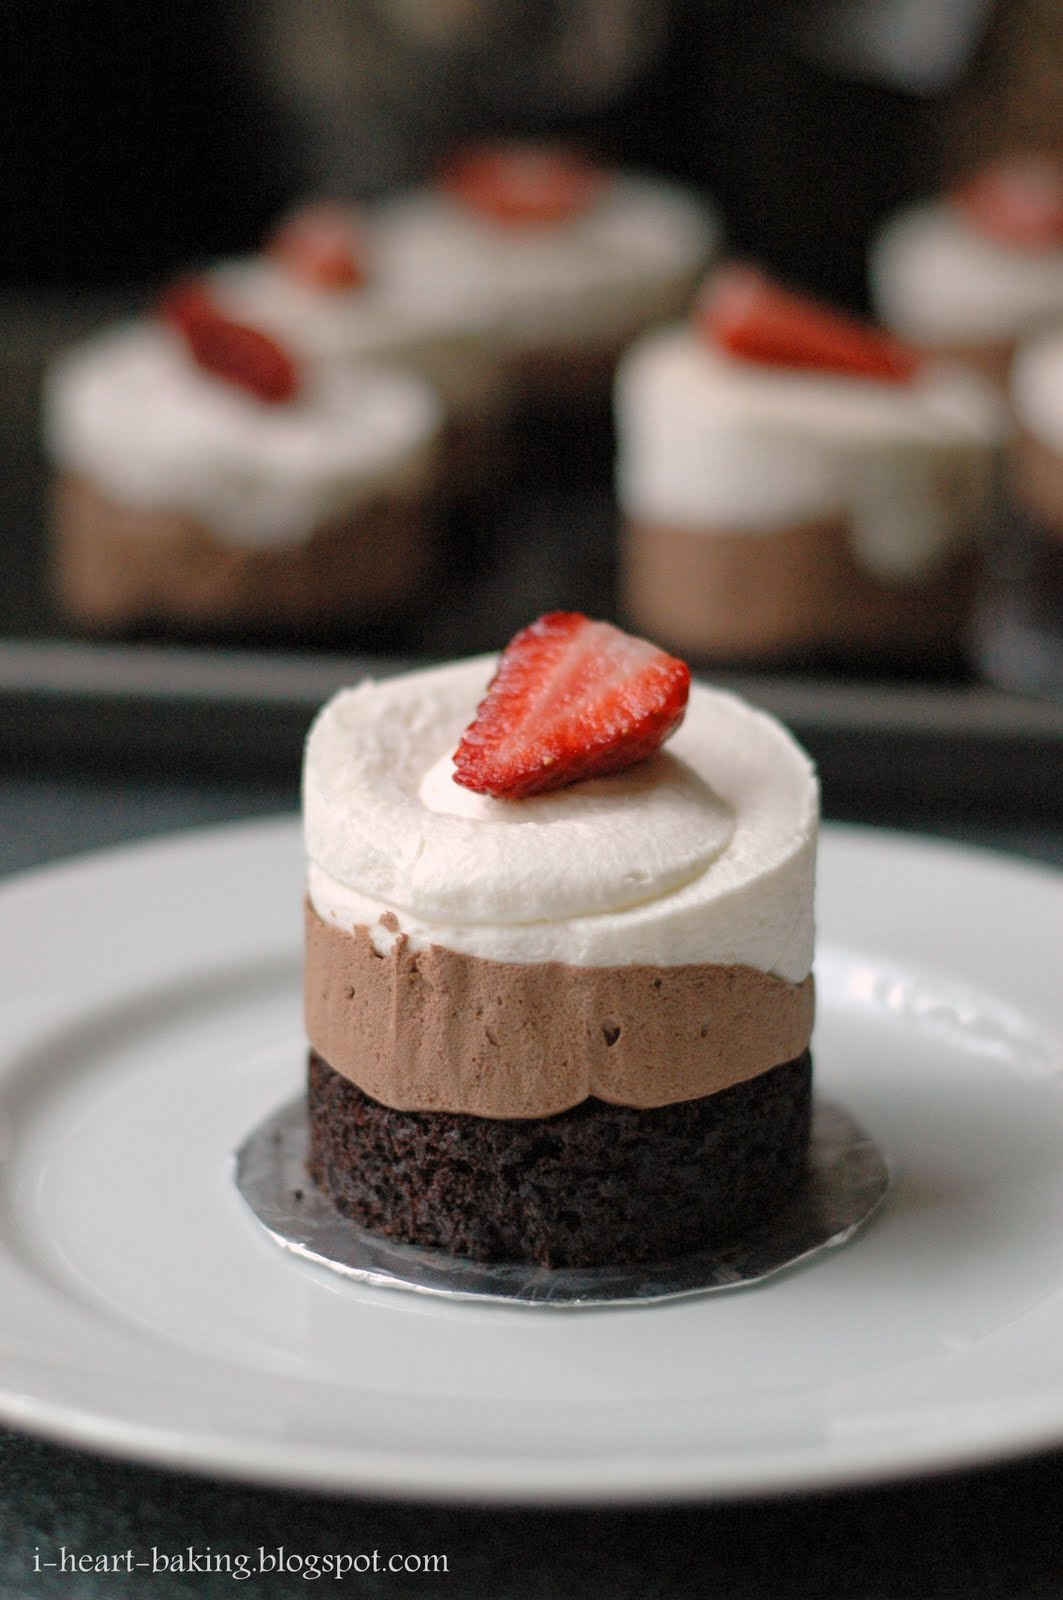 heart baking!: triple chocolate mousse cakes